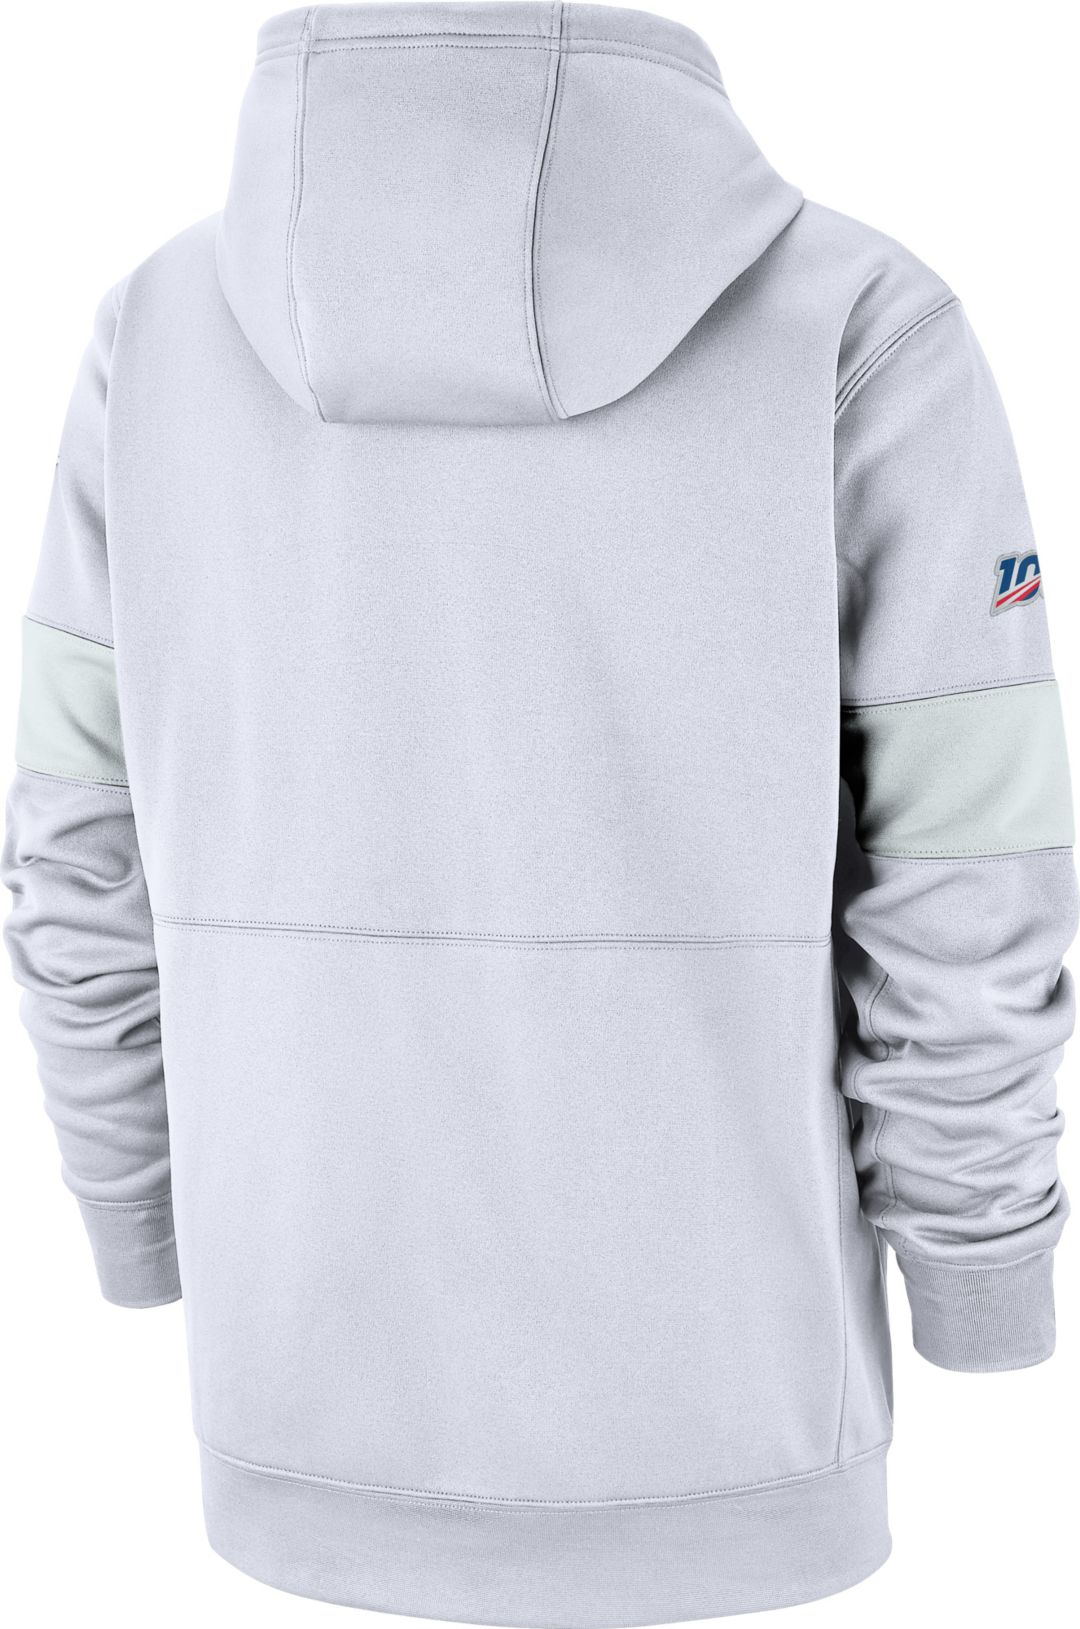 online retailer 5924b 27e92 Nike Men's New England Patriots 100th Sideline Therma-FIT Pullover White  Hoodie